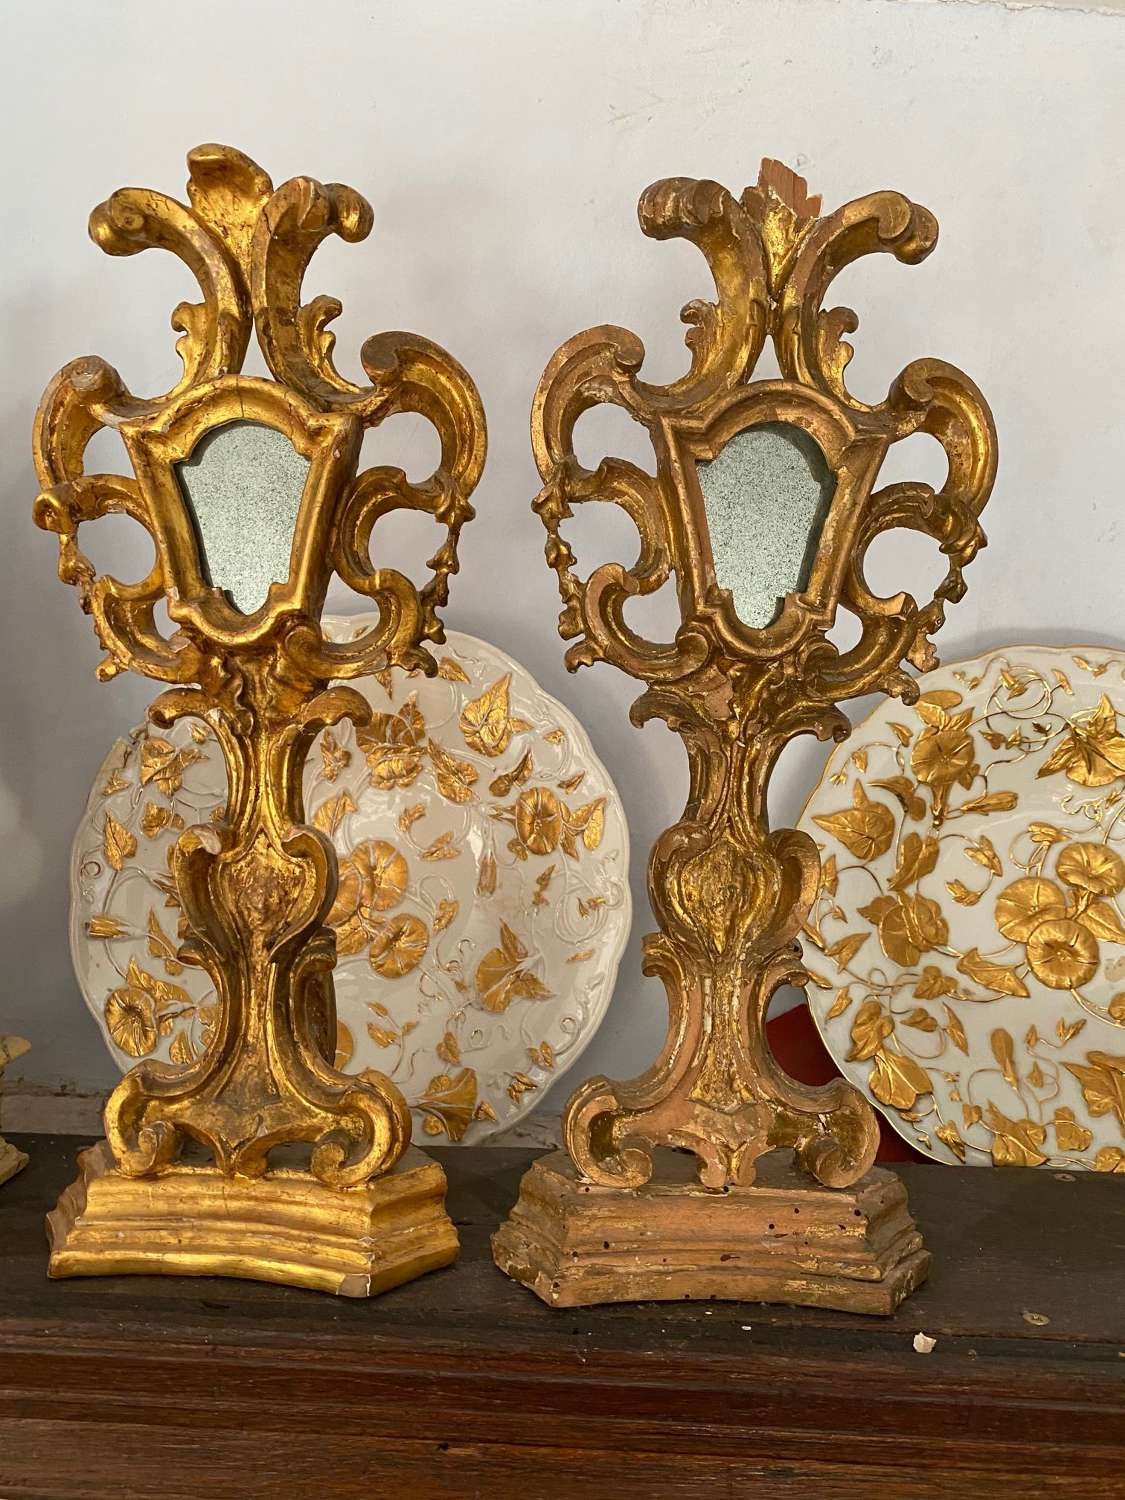 A pair of carved, gilded reliquaries